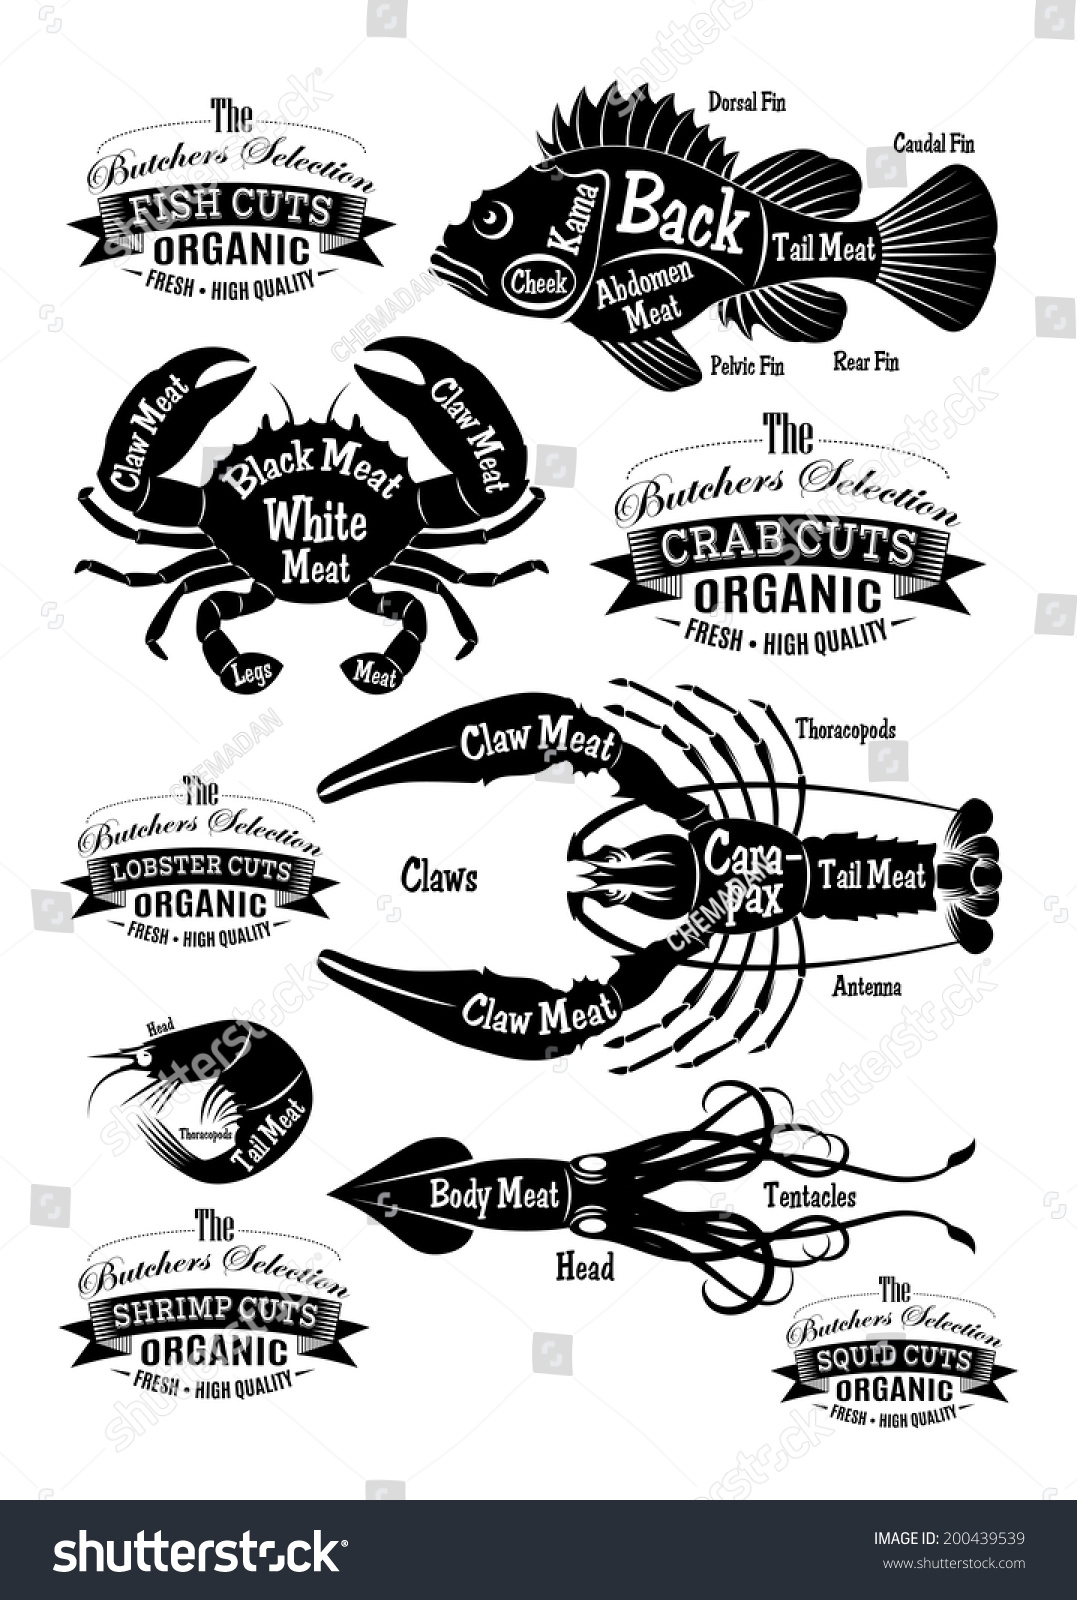 hight resolution of vector set of diagram cut carcasses seafood